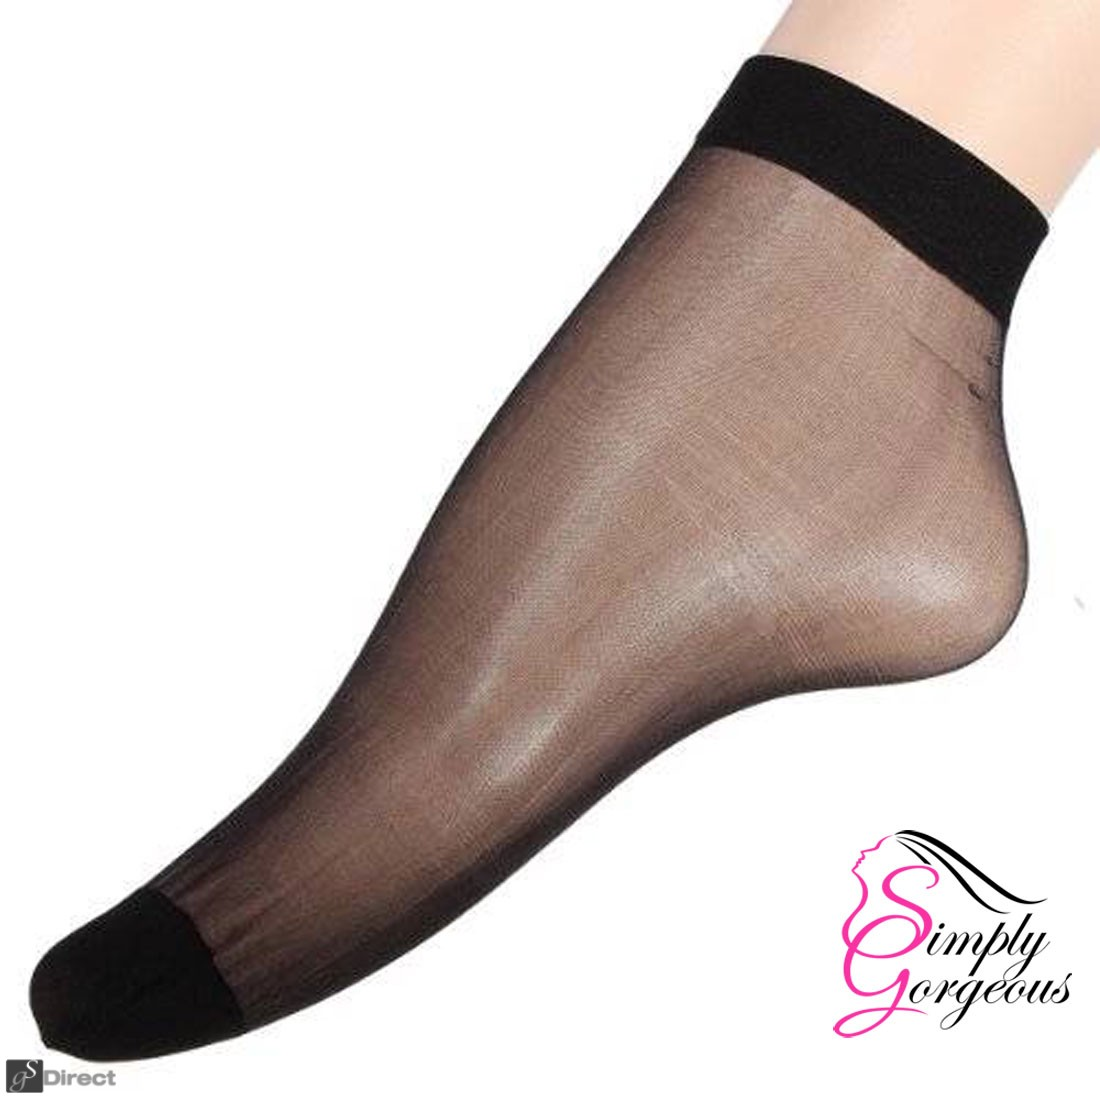 10 x Pairs Ladies 20 DENIER Sheer Ankle High Trouser Pop Socks UK SIZE 4-7 - Black